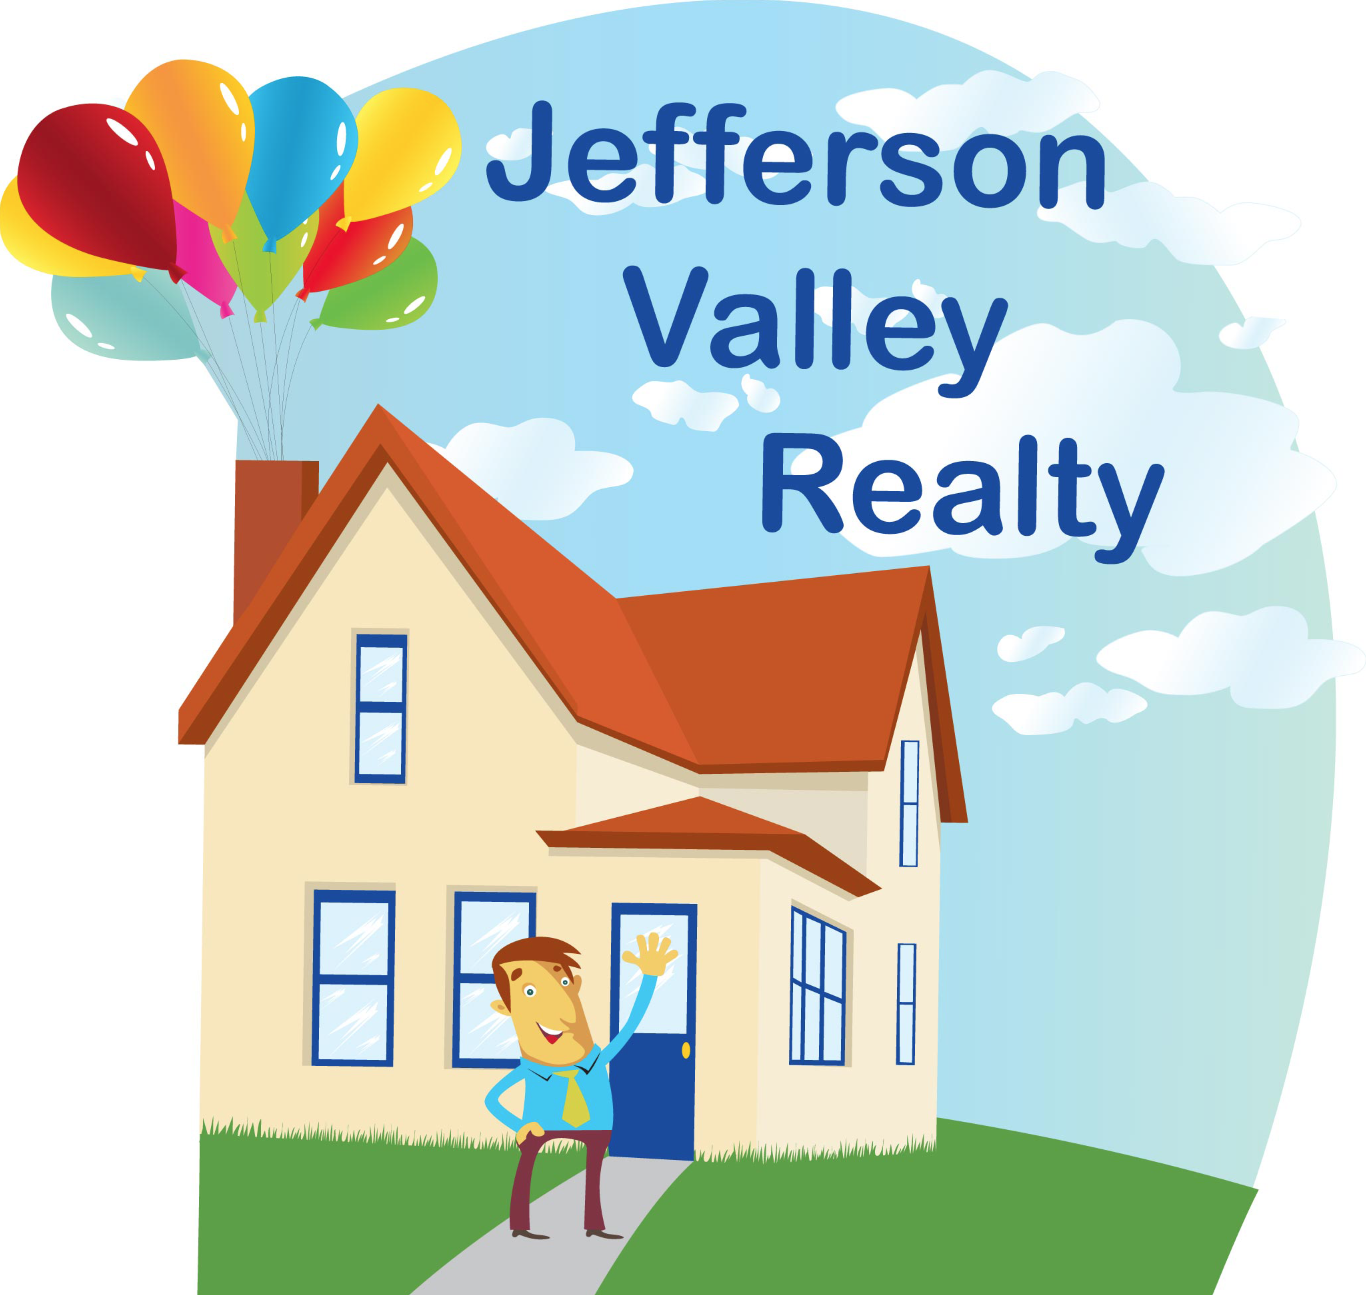 Jefferson Valley Realty